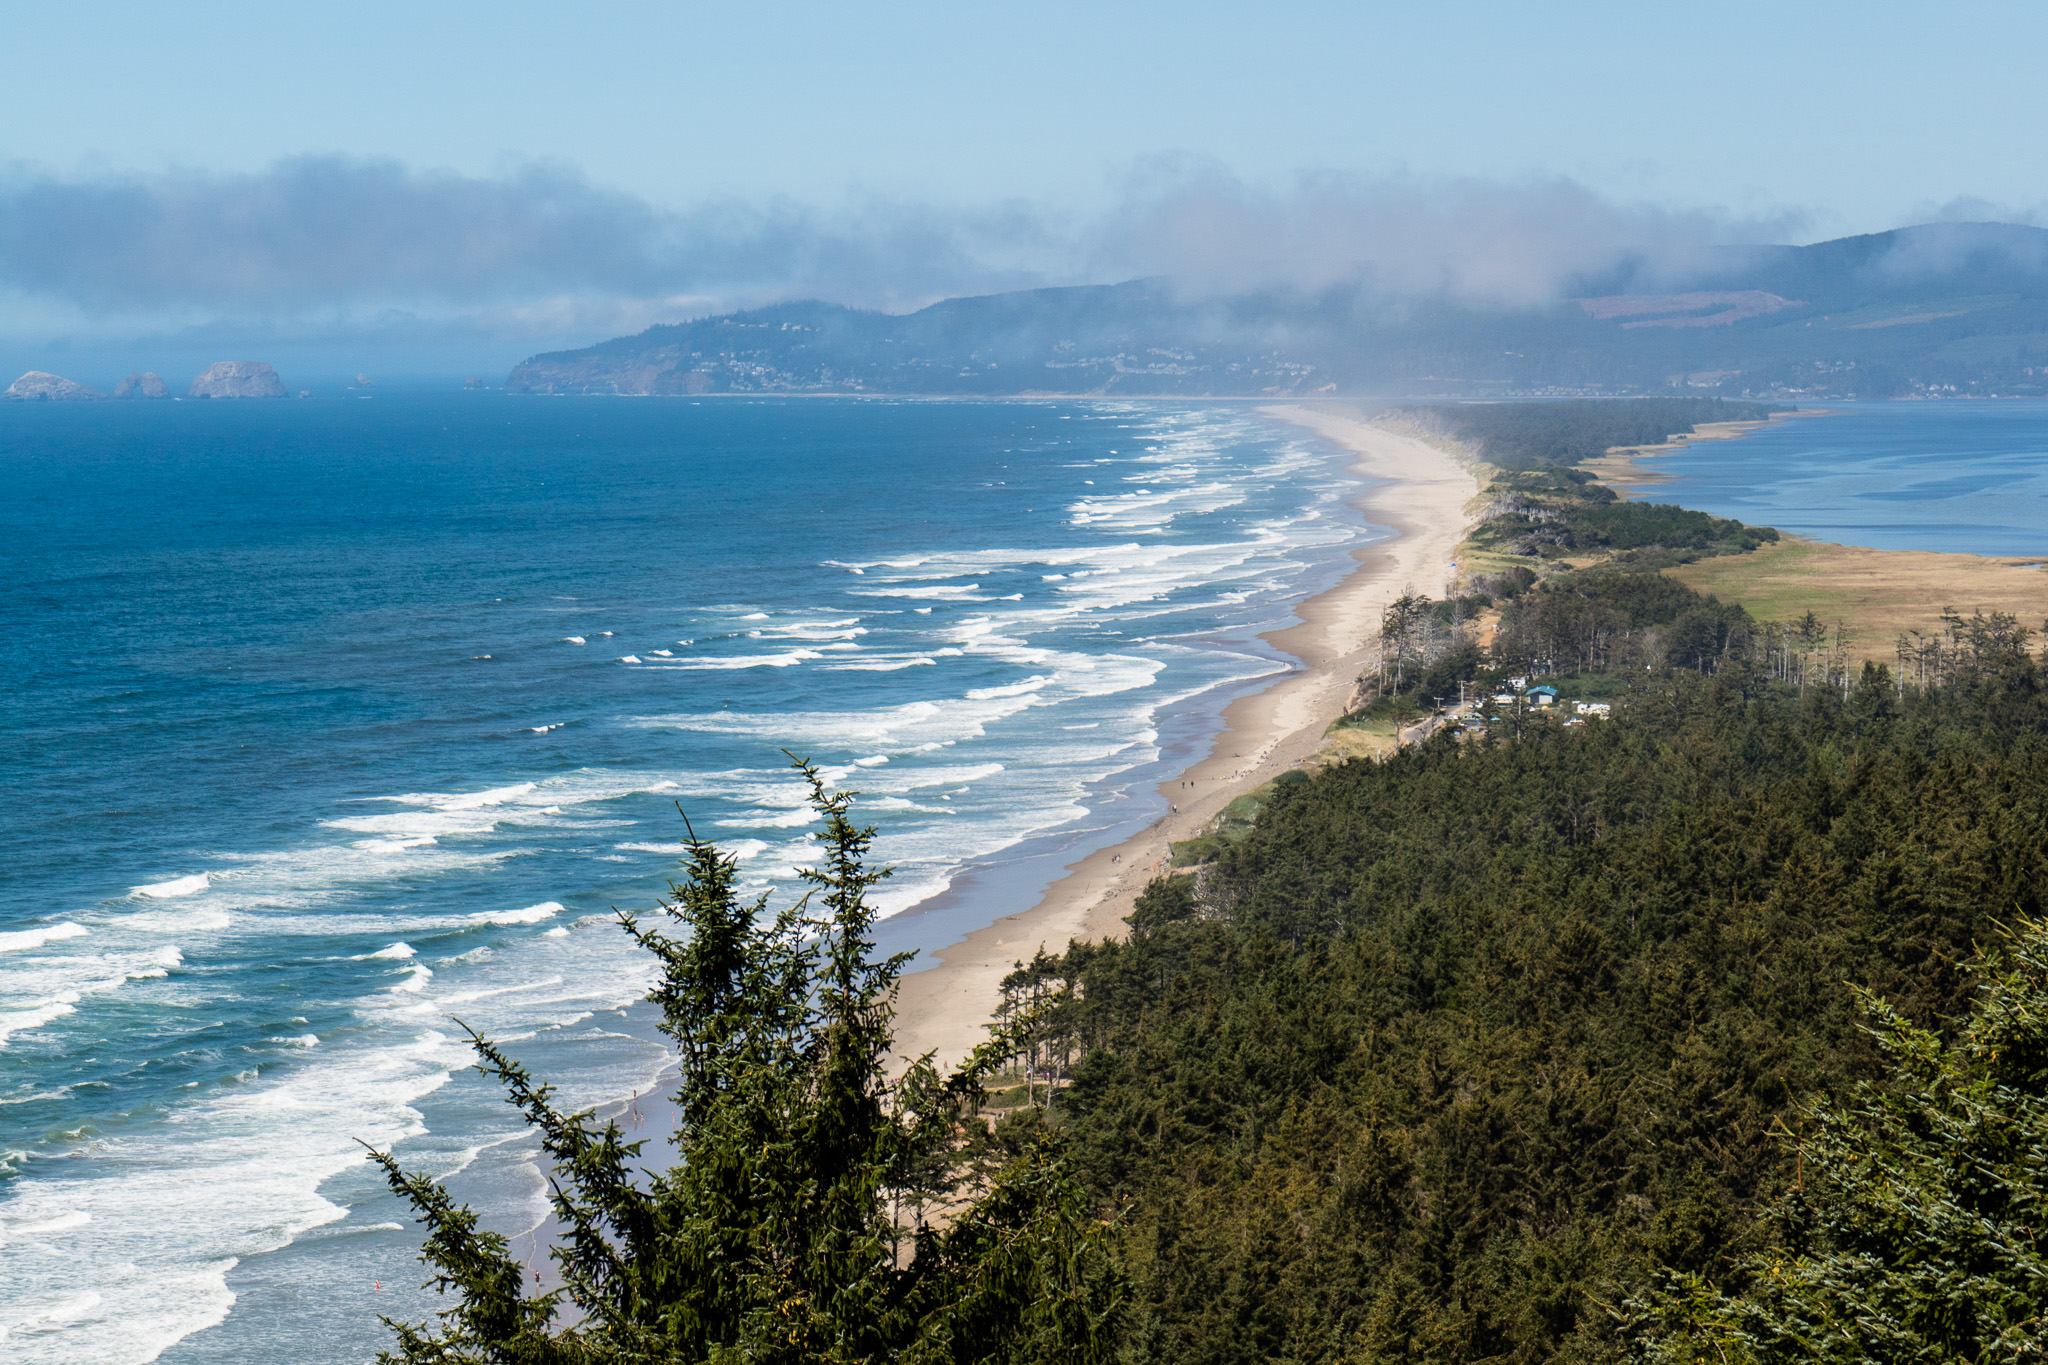 This was a little lookout we found as we were driving the coastline. A pretty amazing perspective of the Netarts Bay peninsula.